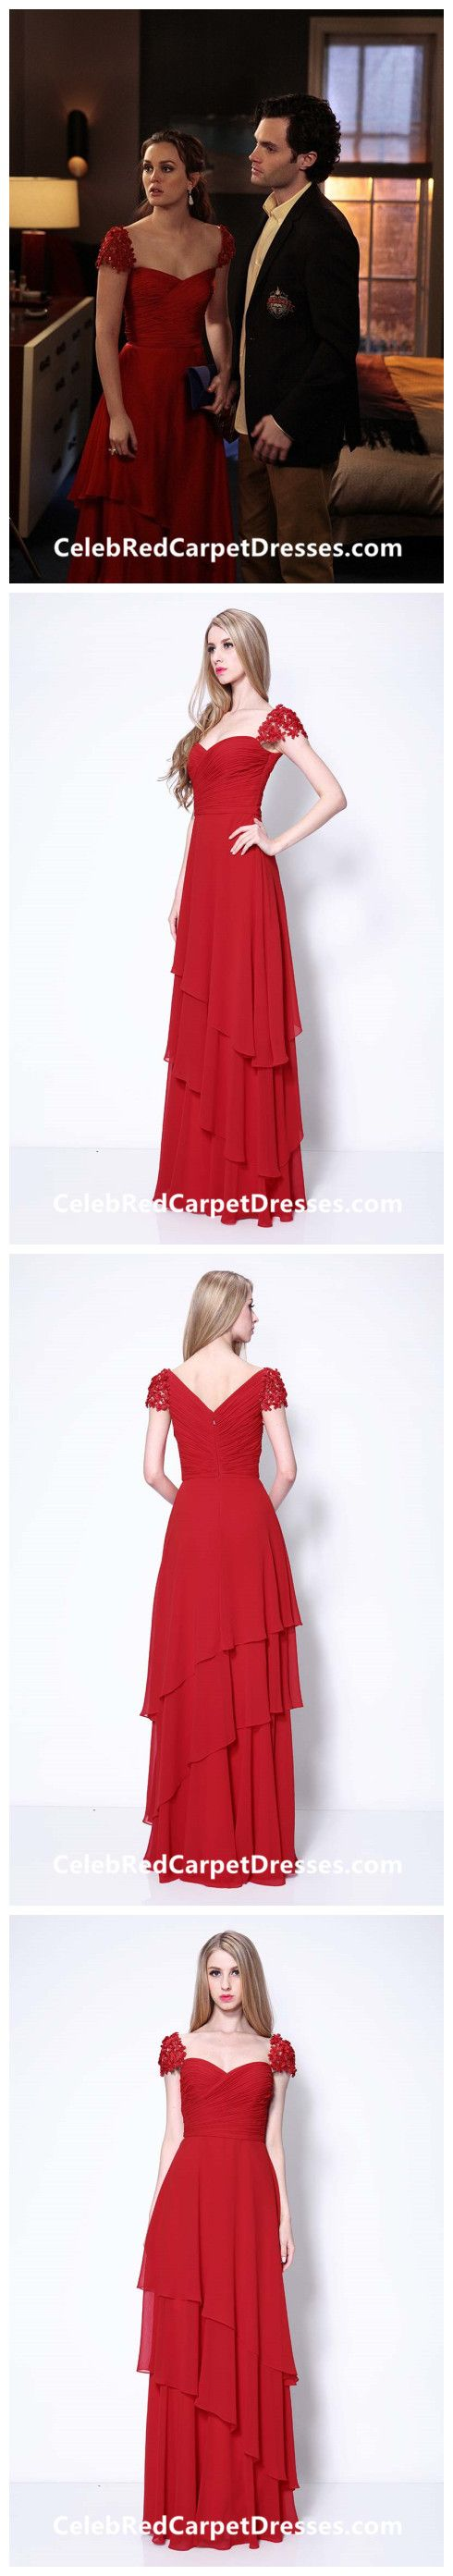 Leighton Meester Cap-sleeve Red Dress in Gossip Girl Season 5